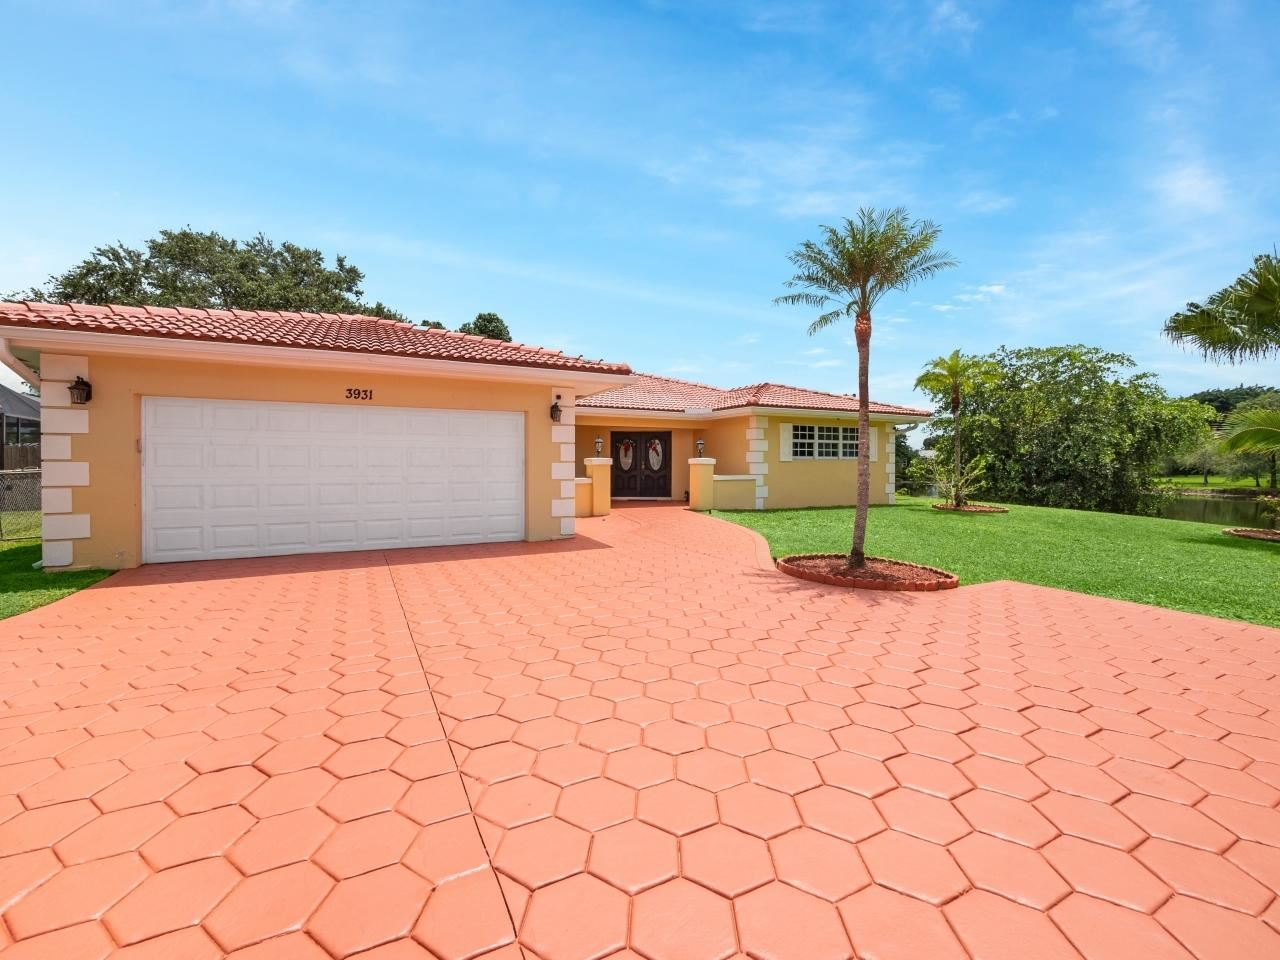 Photo of 3931 NW 108th Drive, Coral Springs, FL 33065 (MLS # RX-10732940)